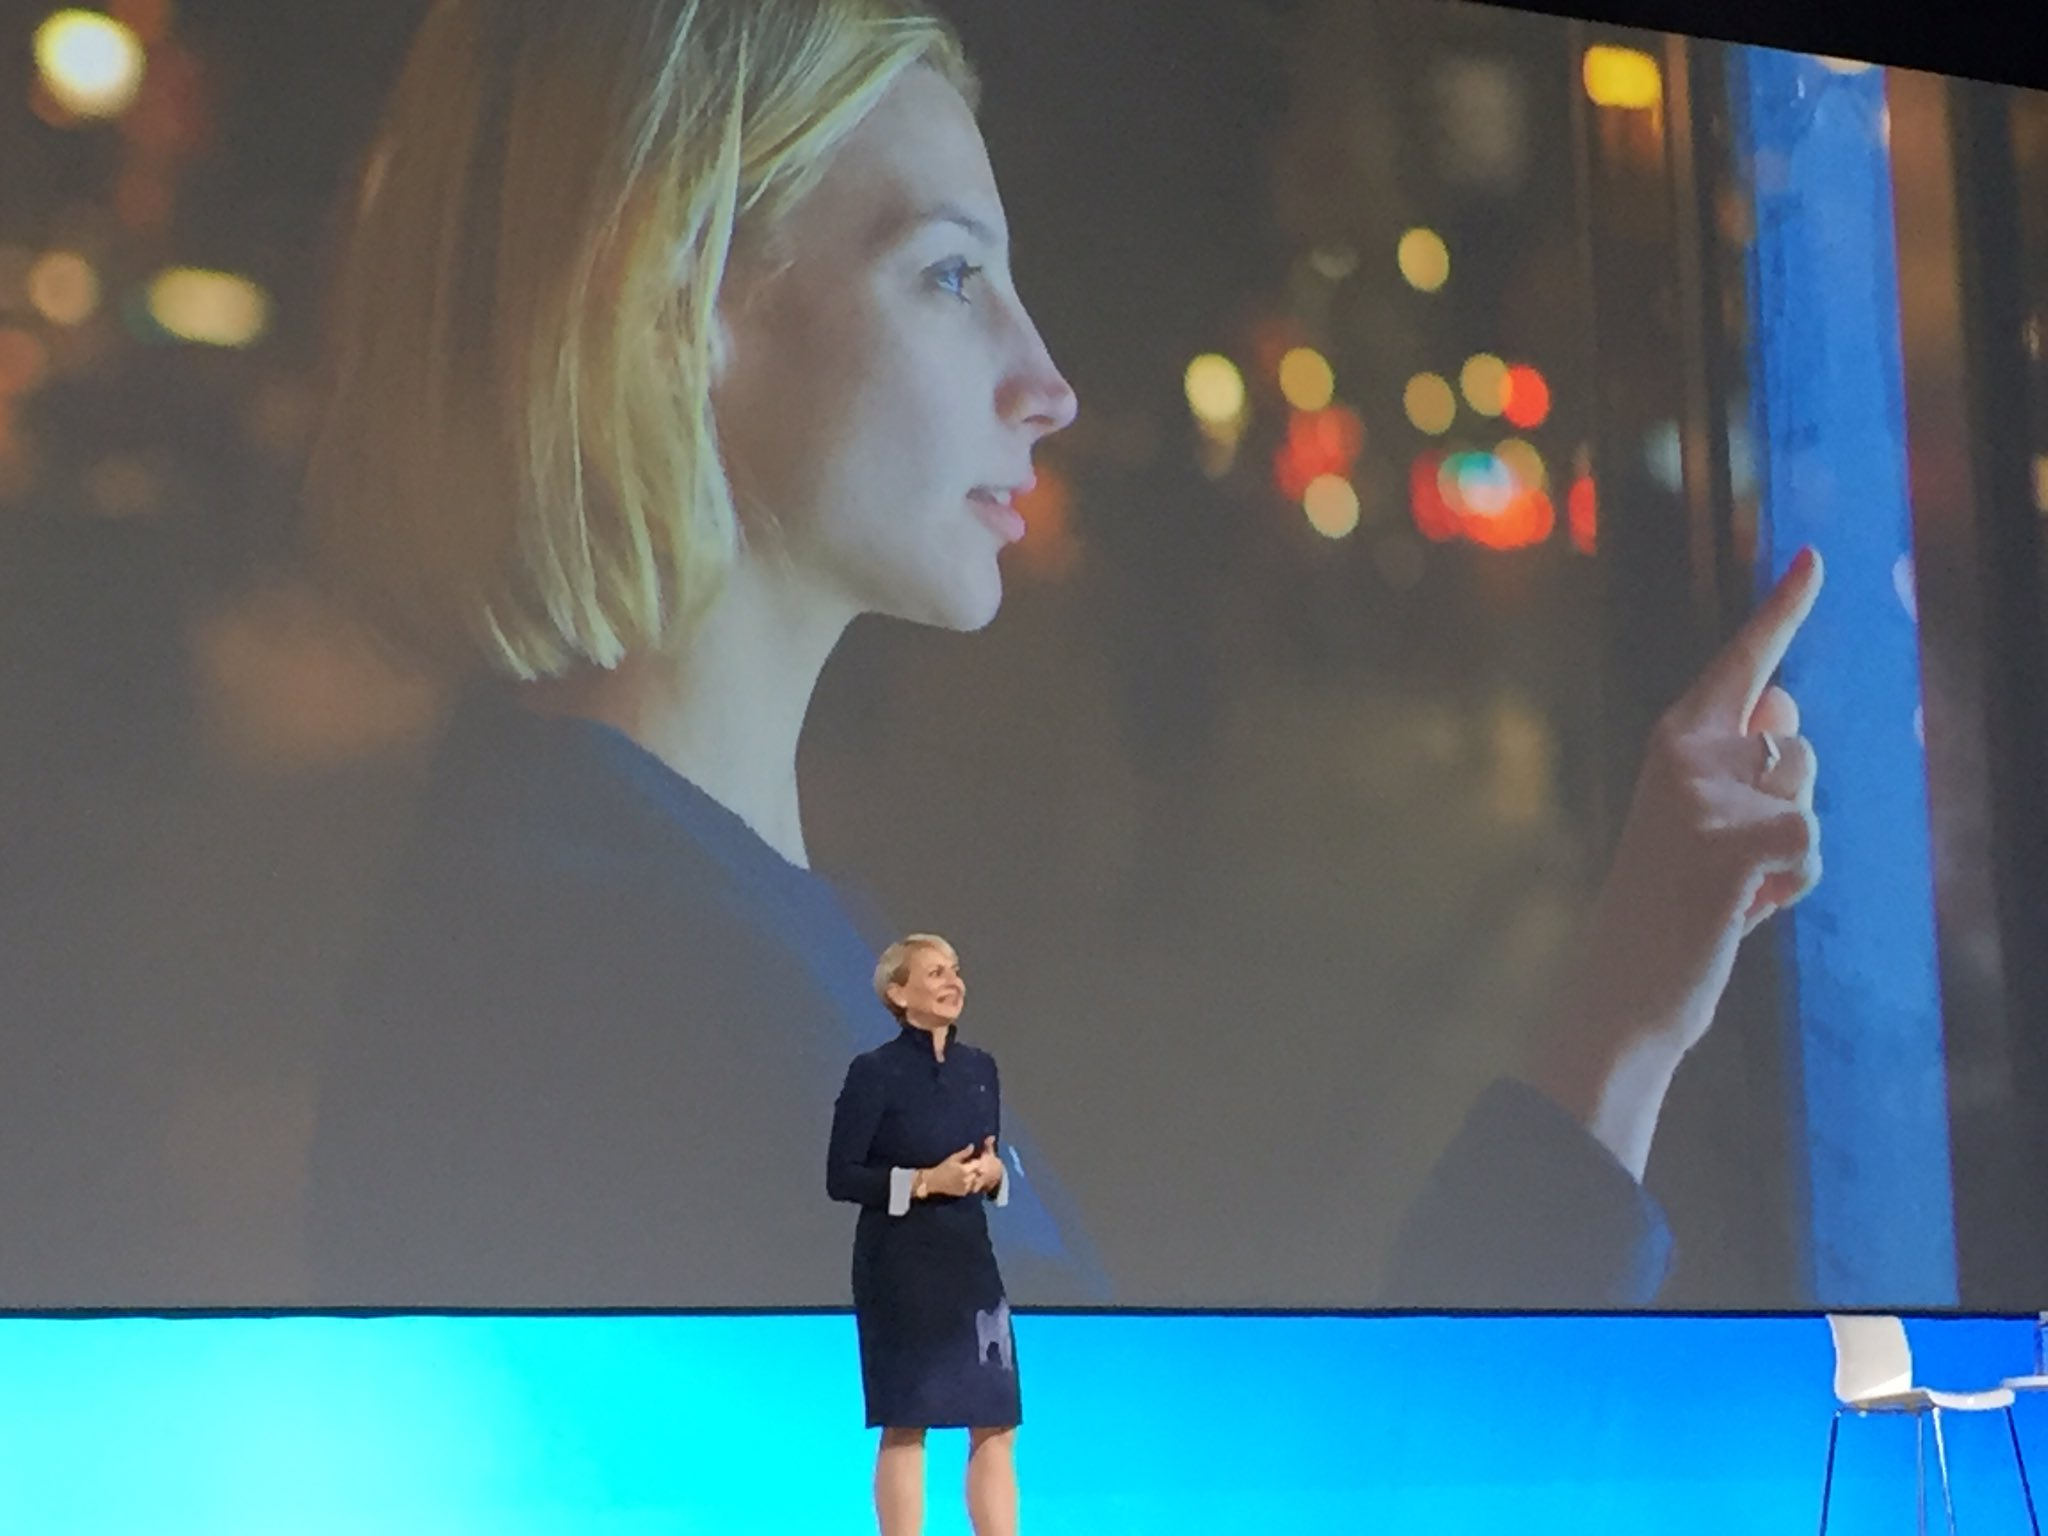 Harriet Green on stage to change the way we work and live using @IBMWatson IOT @IBMNorge #ibmwow #16ESU https://t.co/8tIR2dFkBG